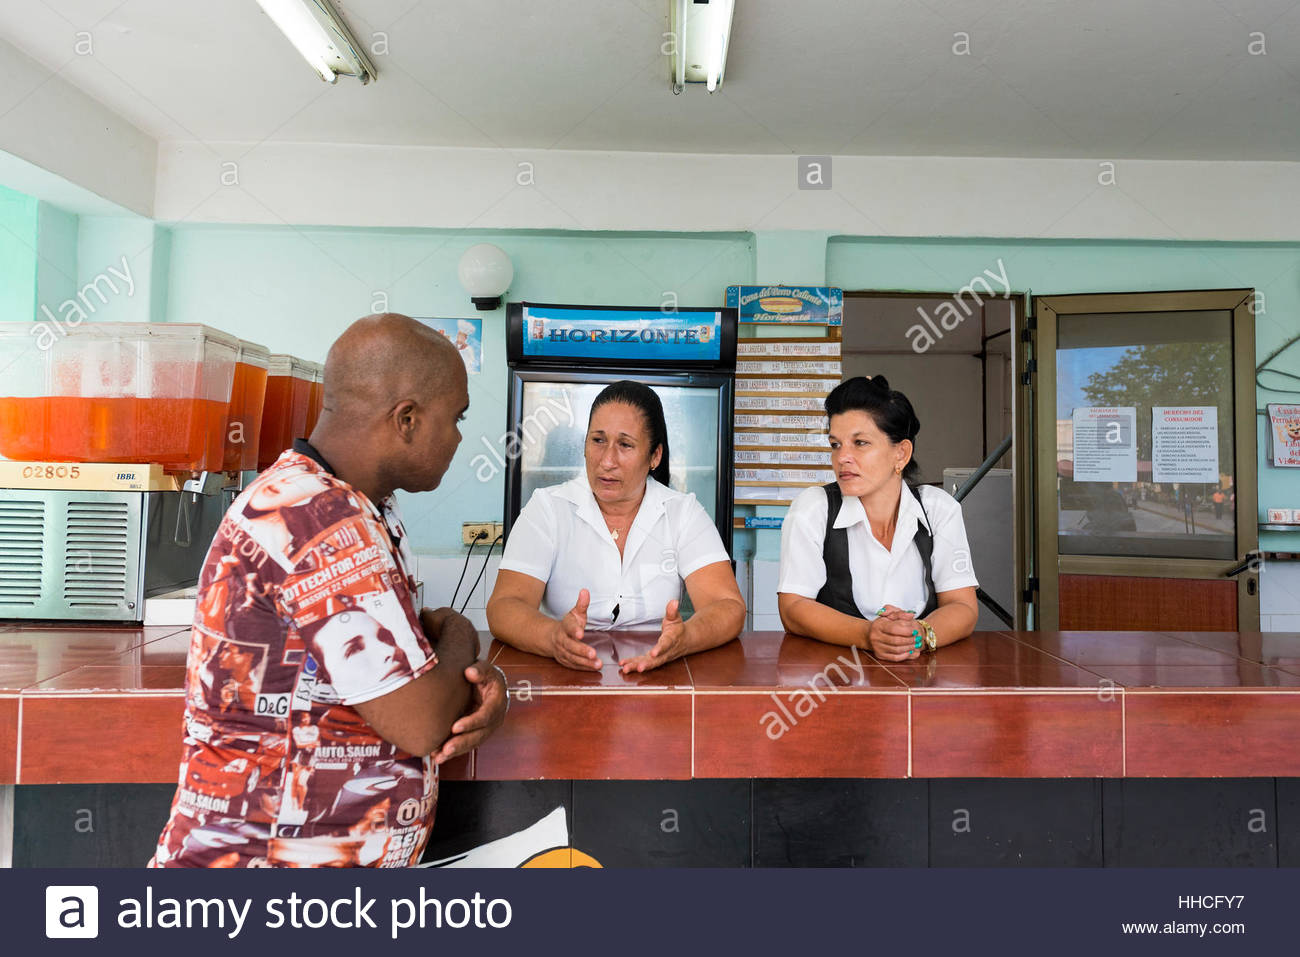 Cuban gastronomic employees talking doing nothing. Cuban real people lifestyle in the Caribbean Island. - Stock Image